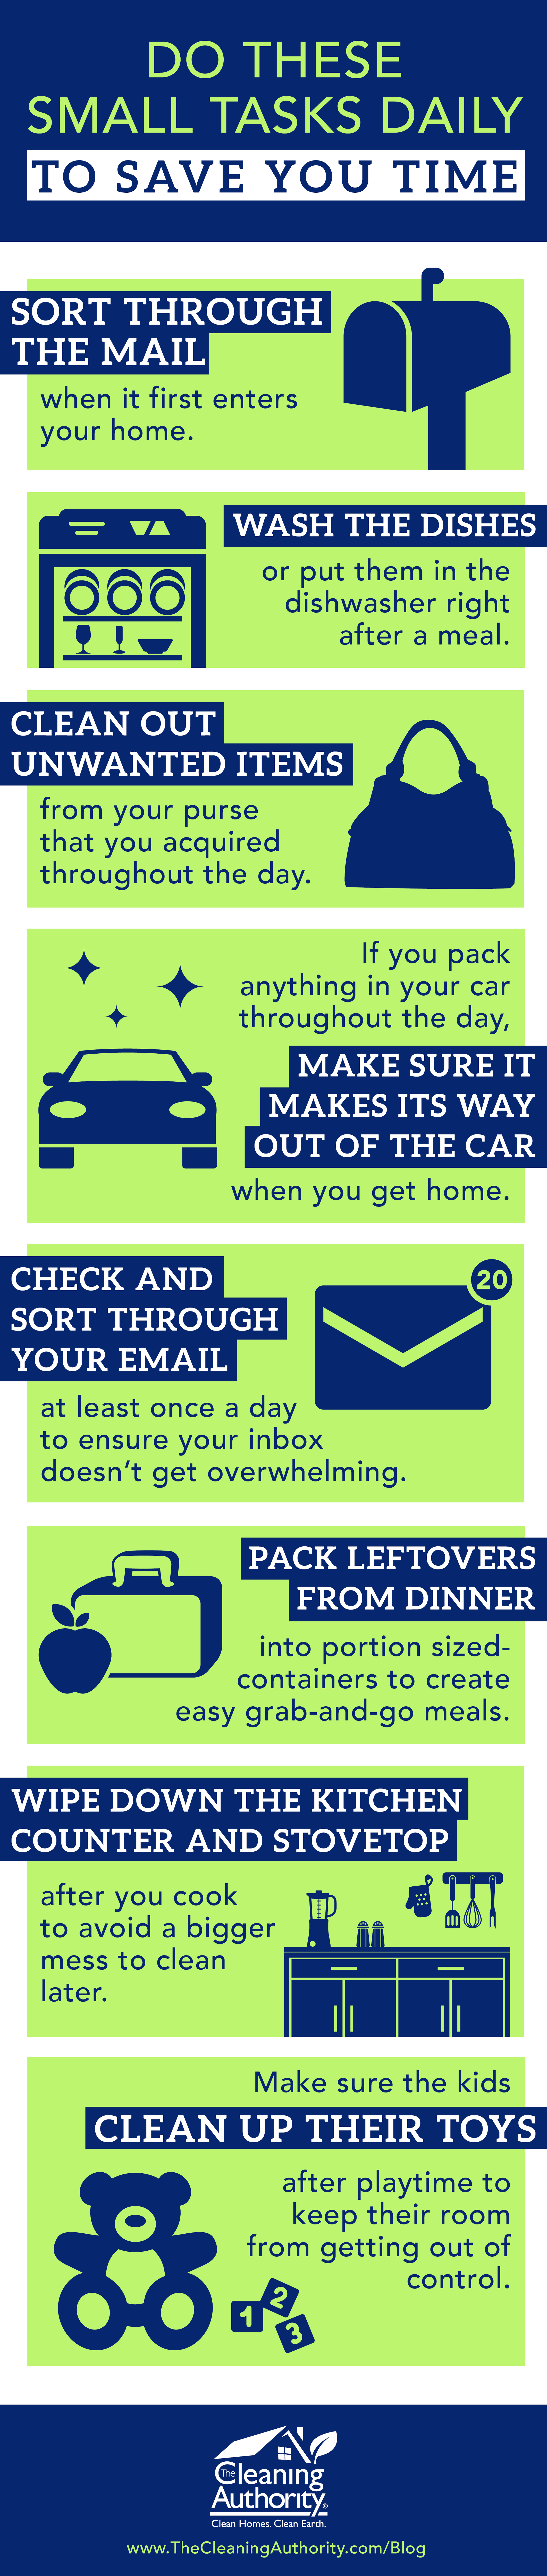 Do These Small Tasks Daily to Save You Time infographic